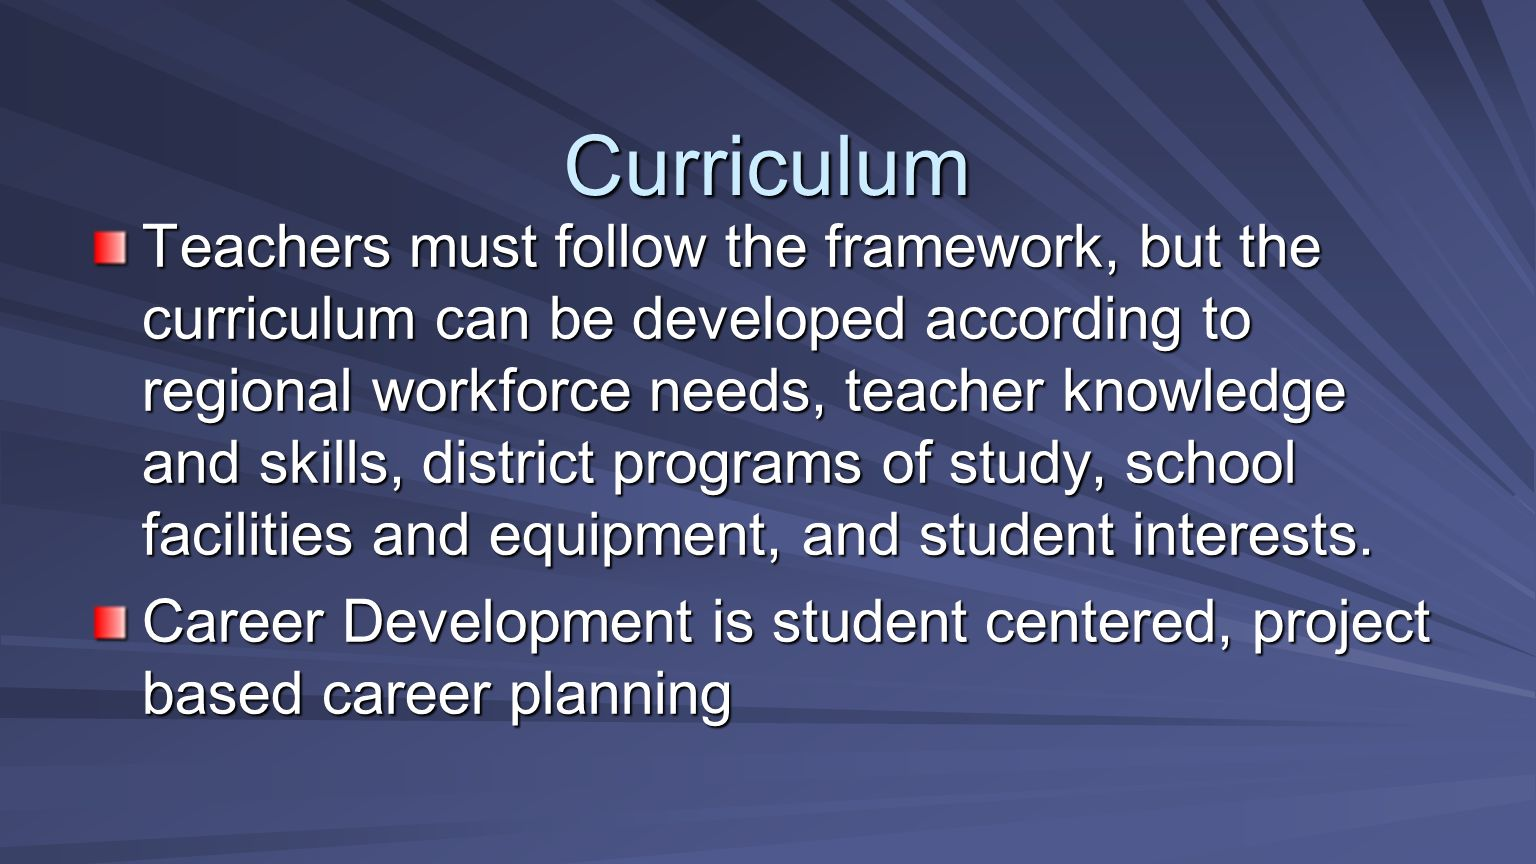 Teachers must follow the framework, but the curriculum can be developed according to regional workforce needs, teacher knowledge and skills, district